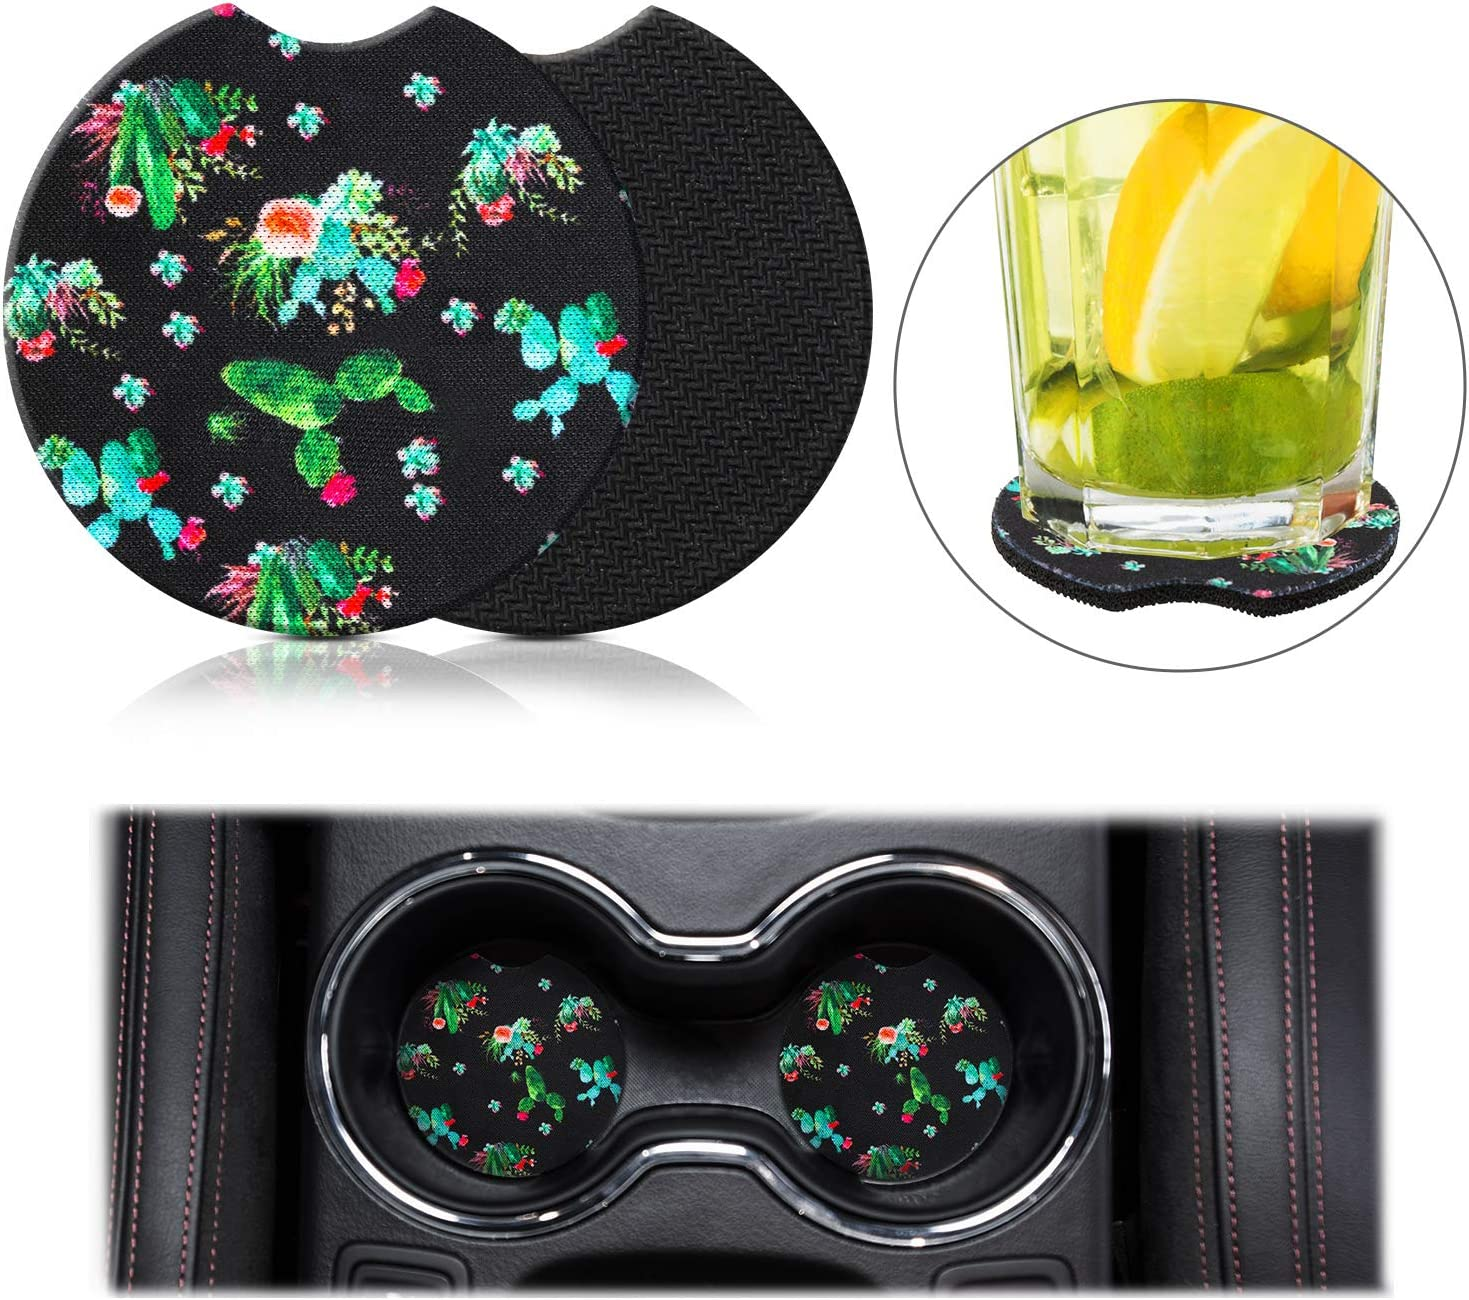 2 Pieces 2.56 Inch Car Coasters Drink Neoprene Coaster Car Cup Holder Rubber Car Cup Pad Mat Absorbent Coaster for Car Living Room Kitchen Office Cactus with Black Background